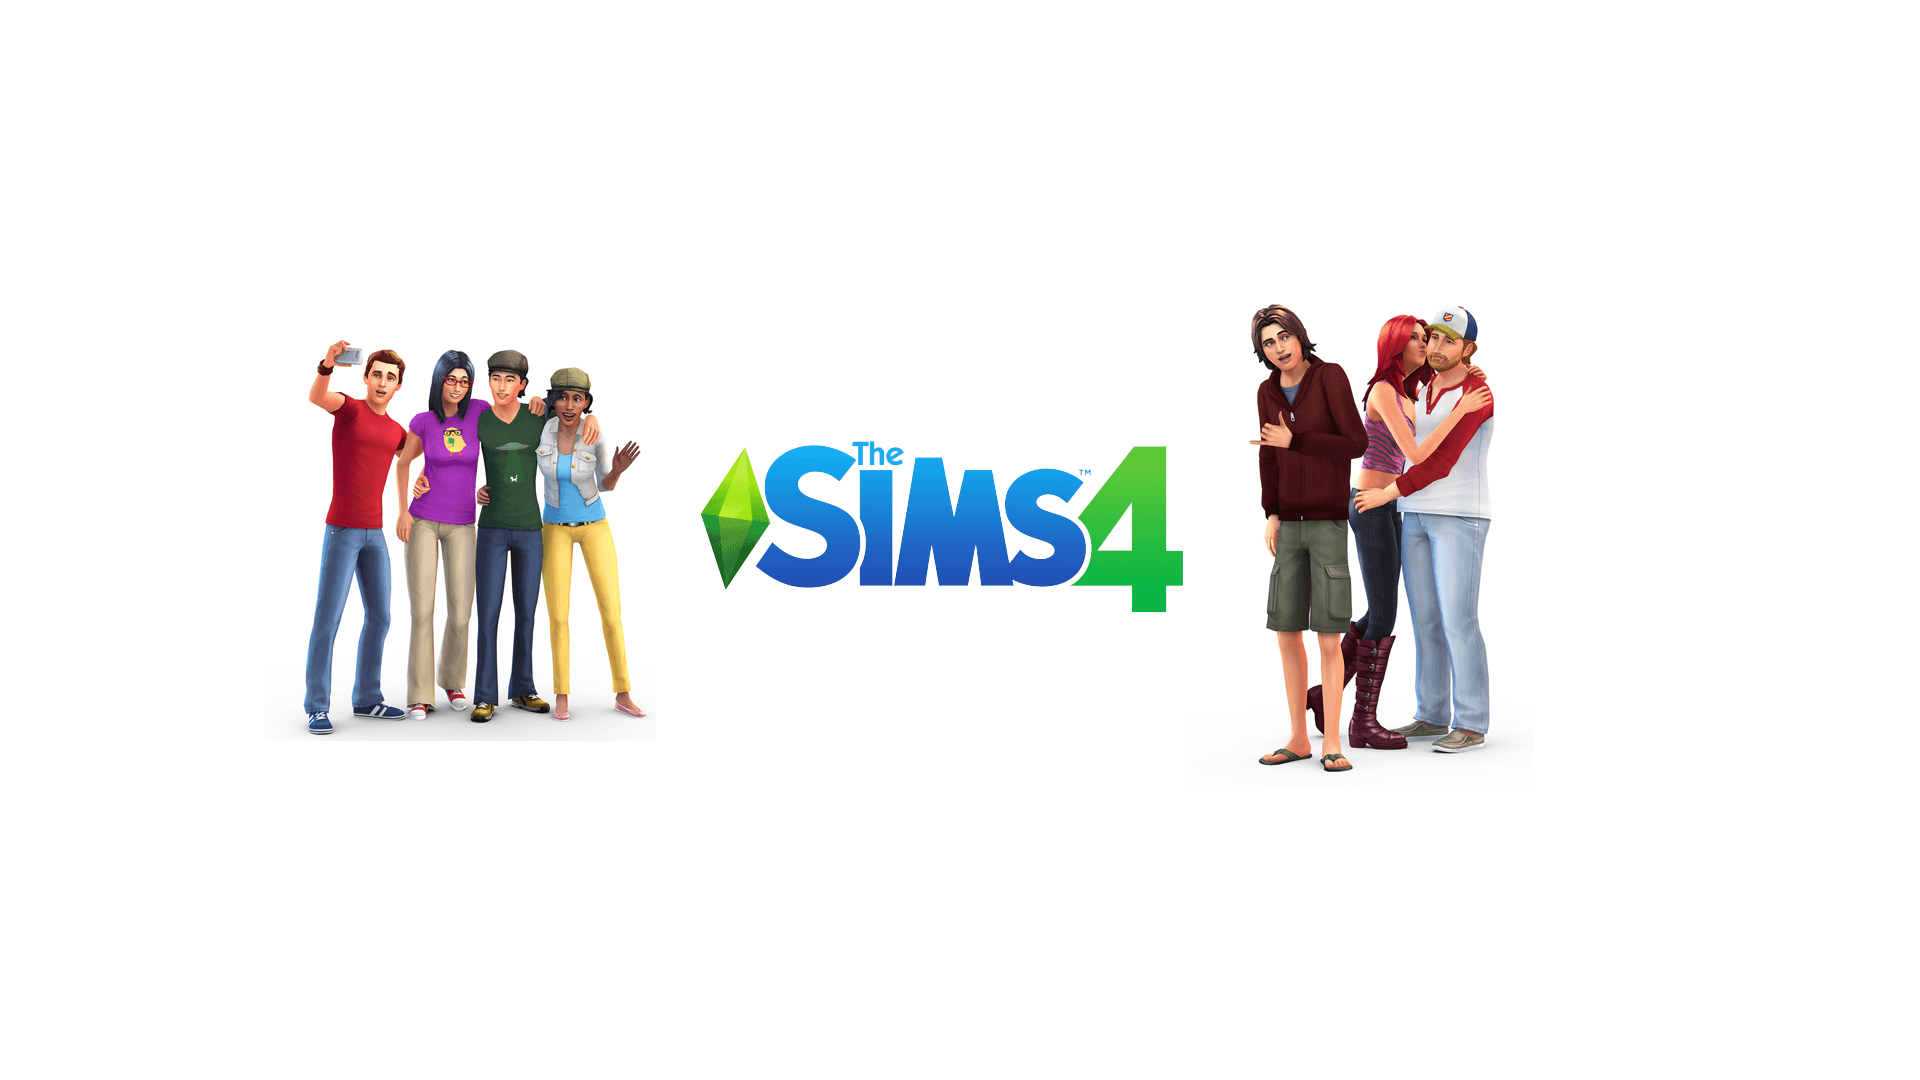 sims 4 backgrounds - photo #9